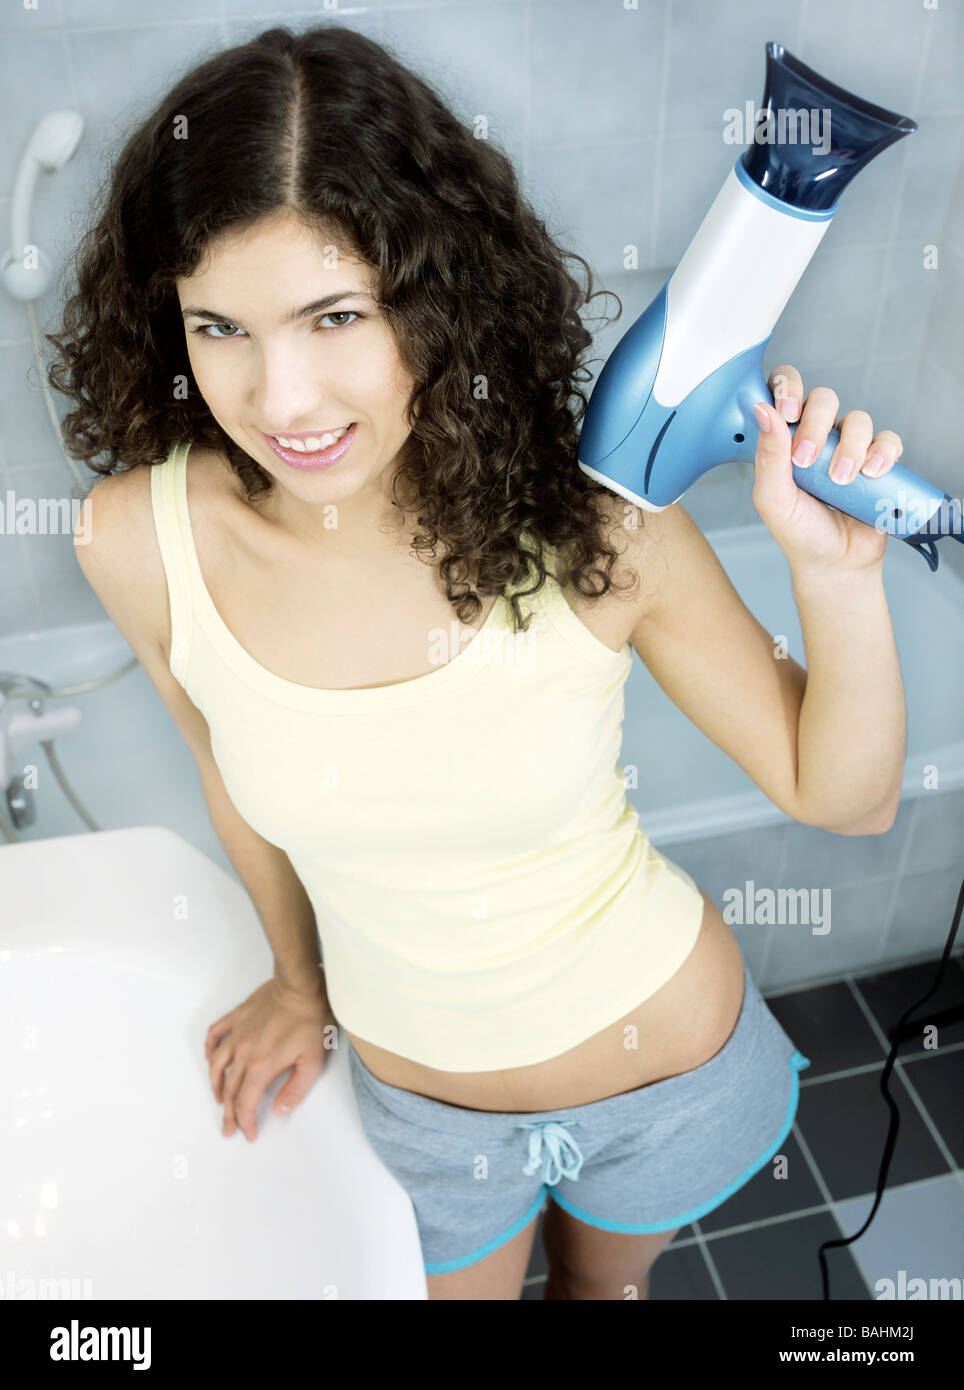 people, woman, girl, teenager, 15-20, 20-25, dark, haired, smile, smiling, curly, hairdrier, indoor, bathroom, vertical - Stock Image